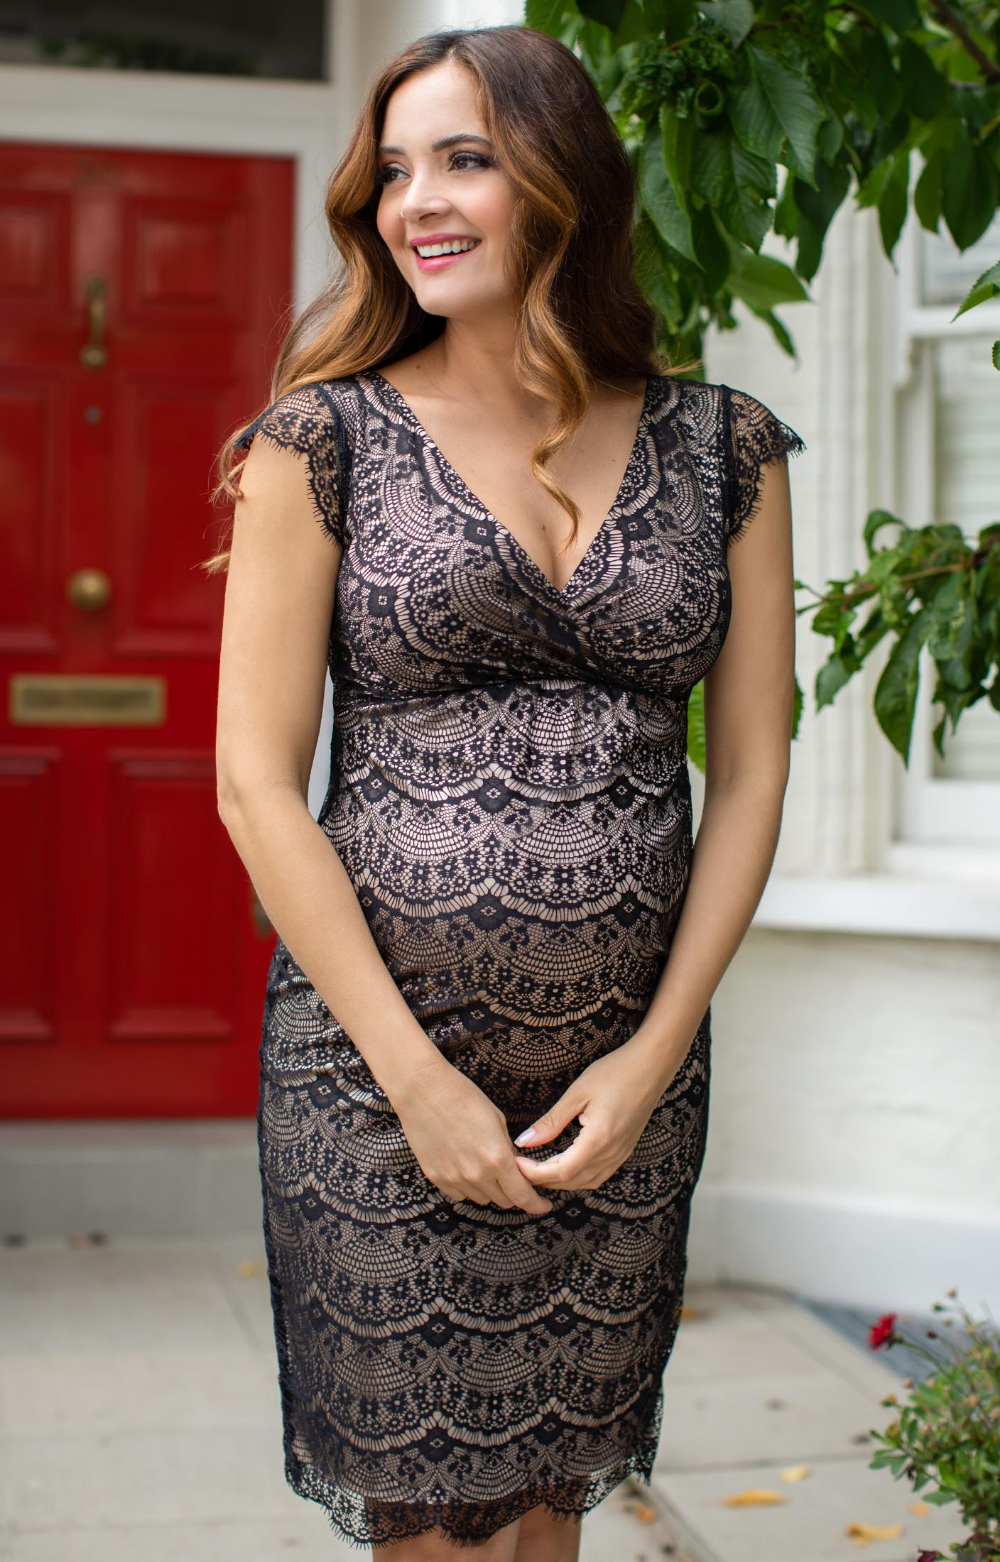 Our sexy vintage style maternity shift dress is sprinkled with